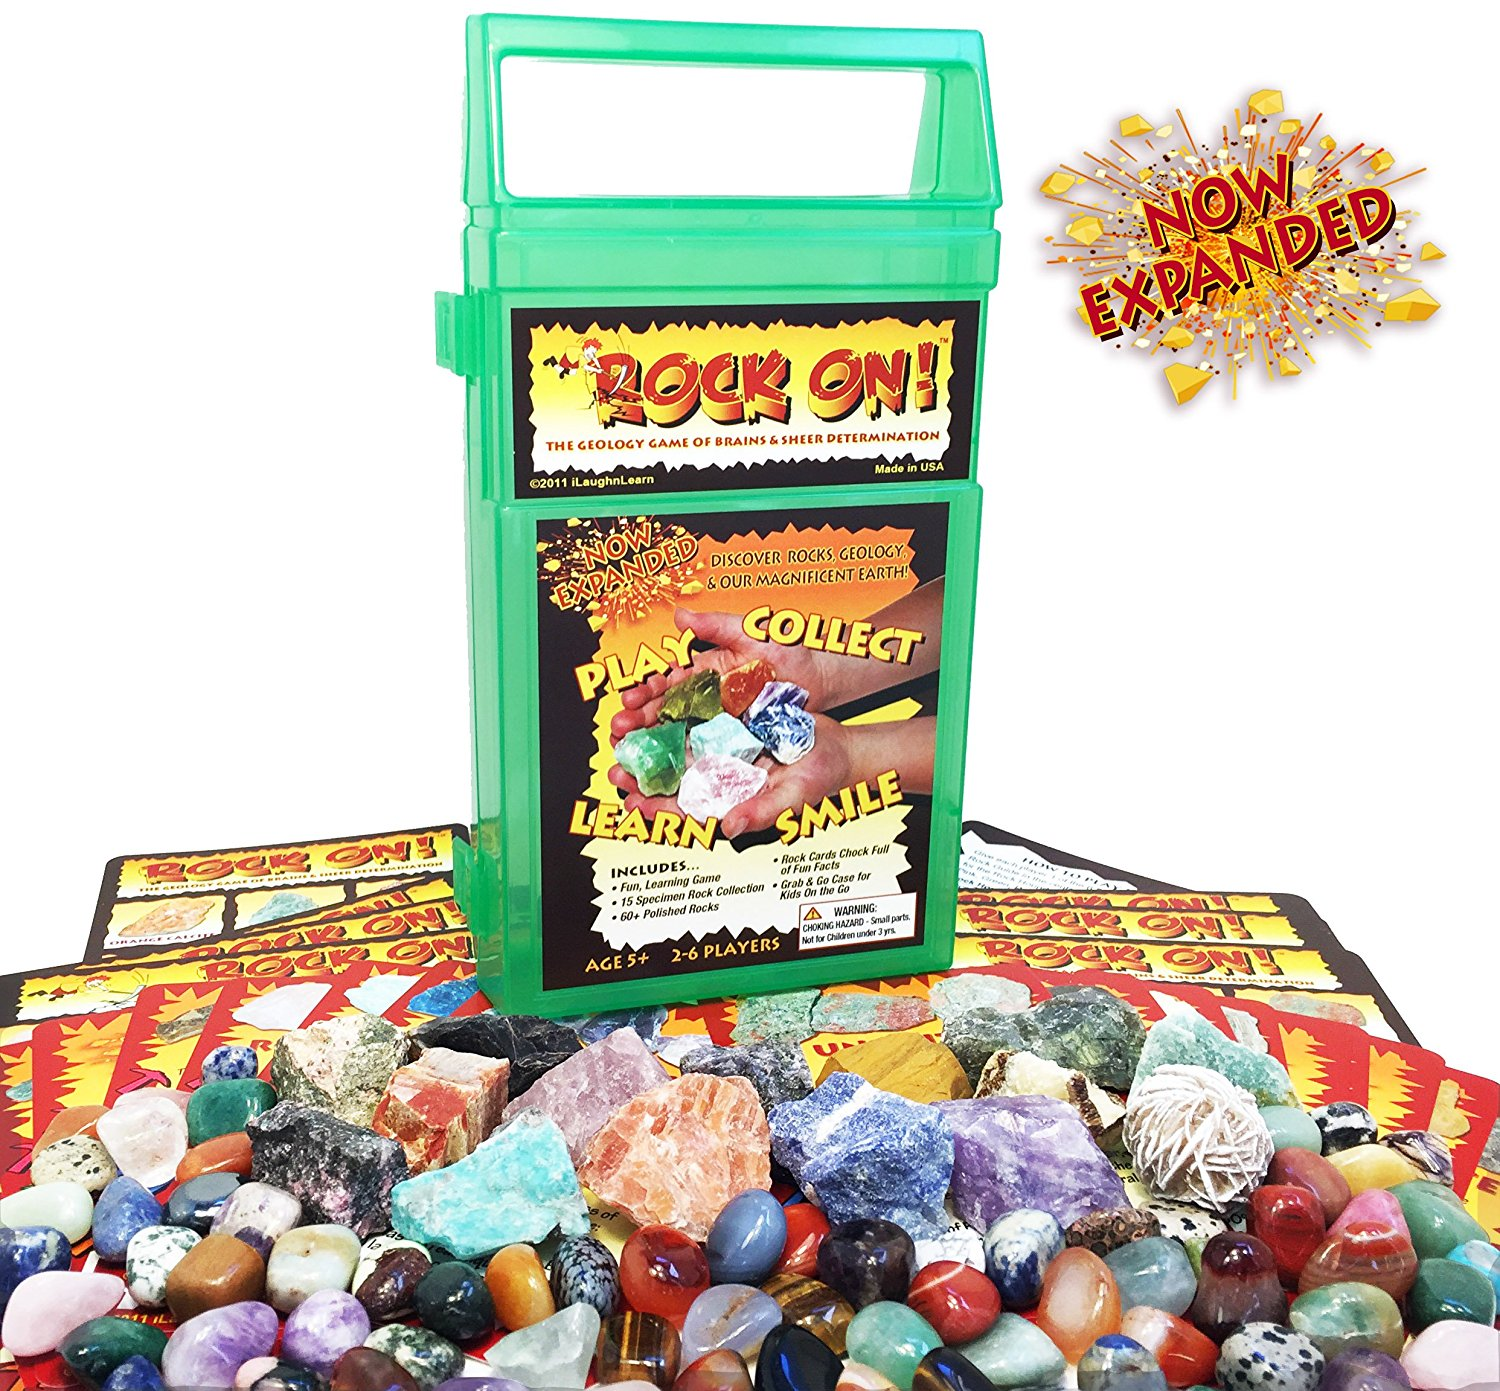 rock-on-geology-game-with-rock-mineral-collection-connect-with-our-magnificent-earth-via-an-educational-game-science-kit